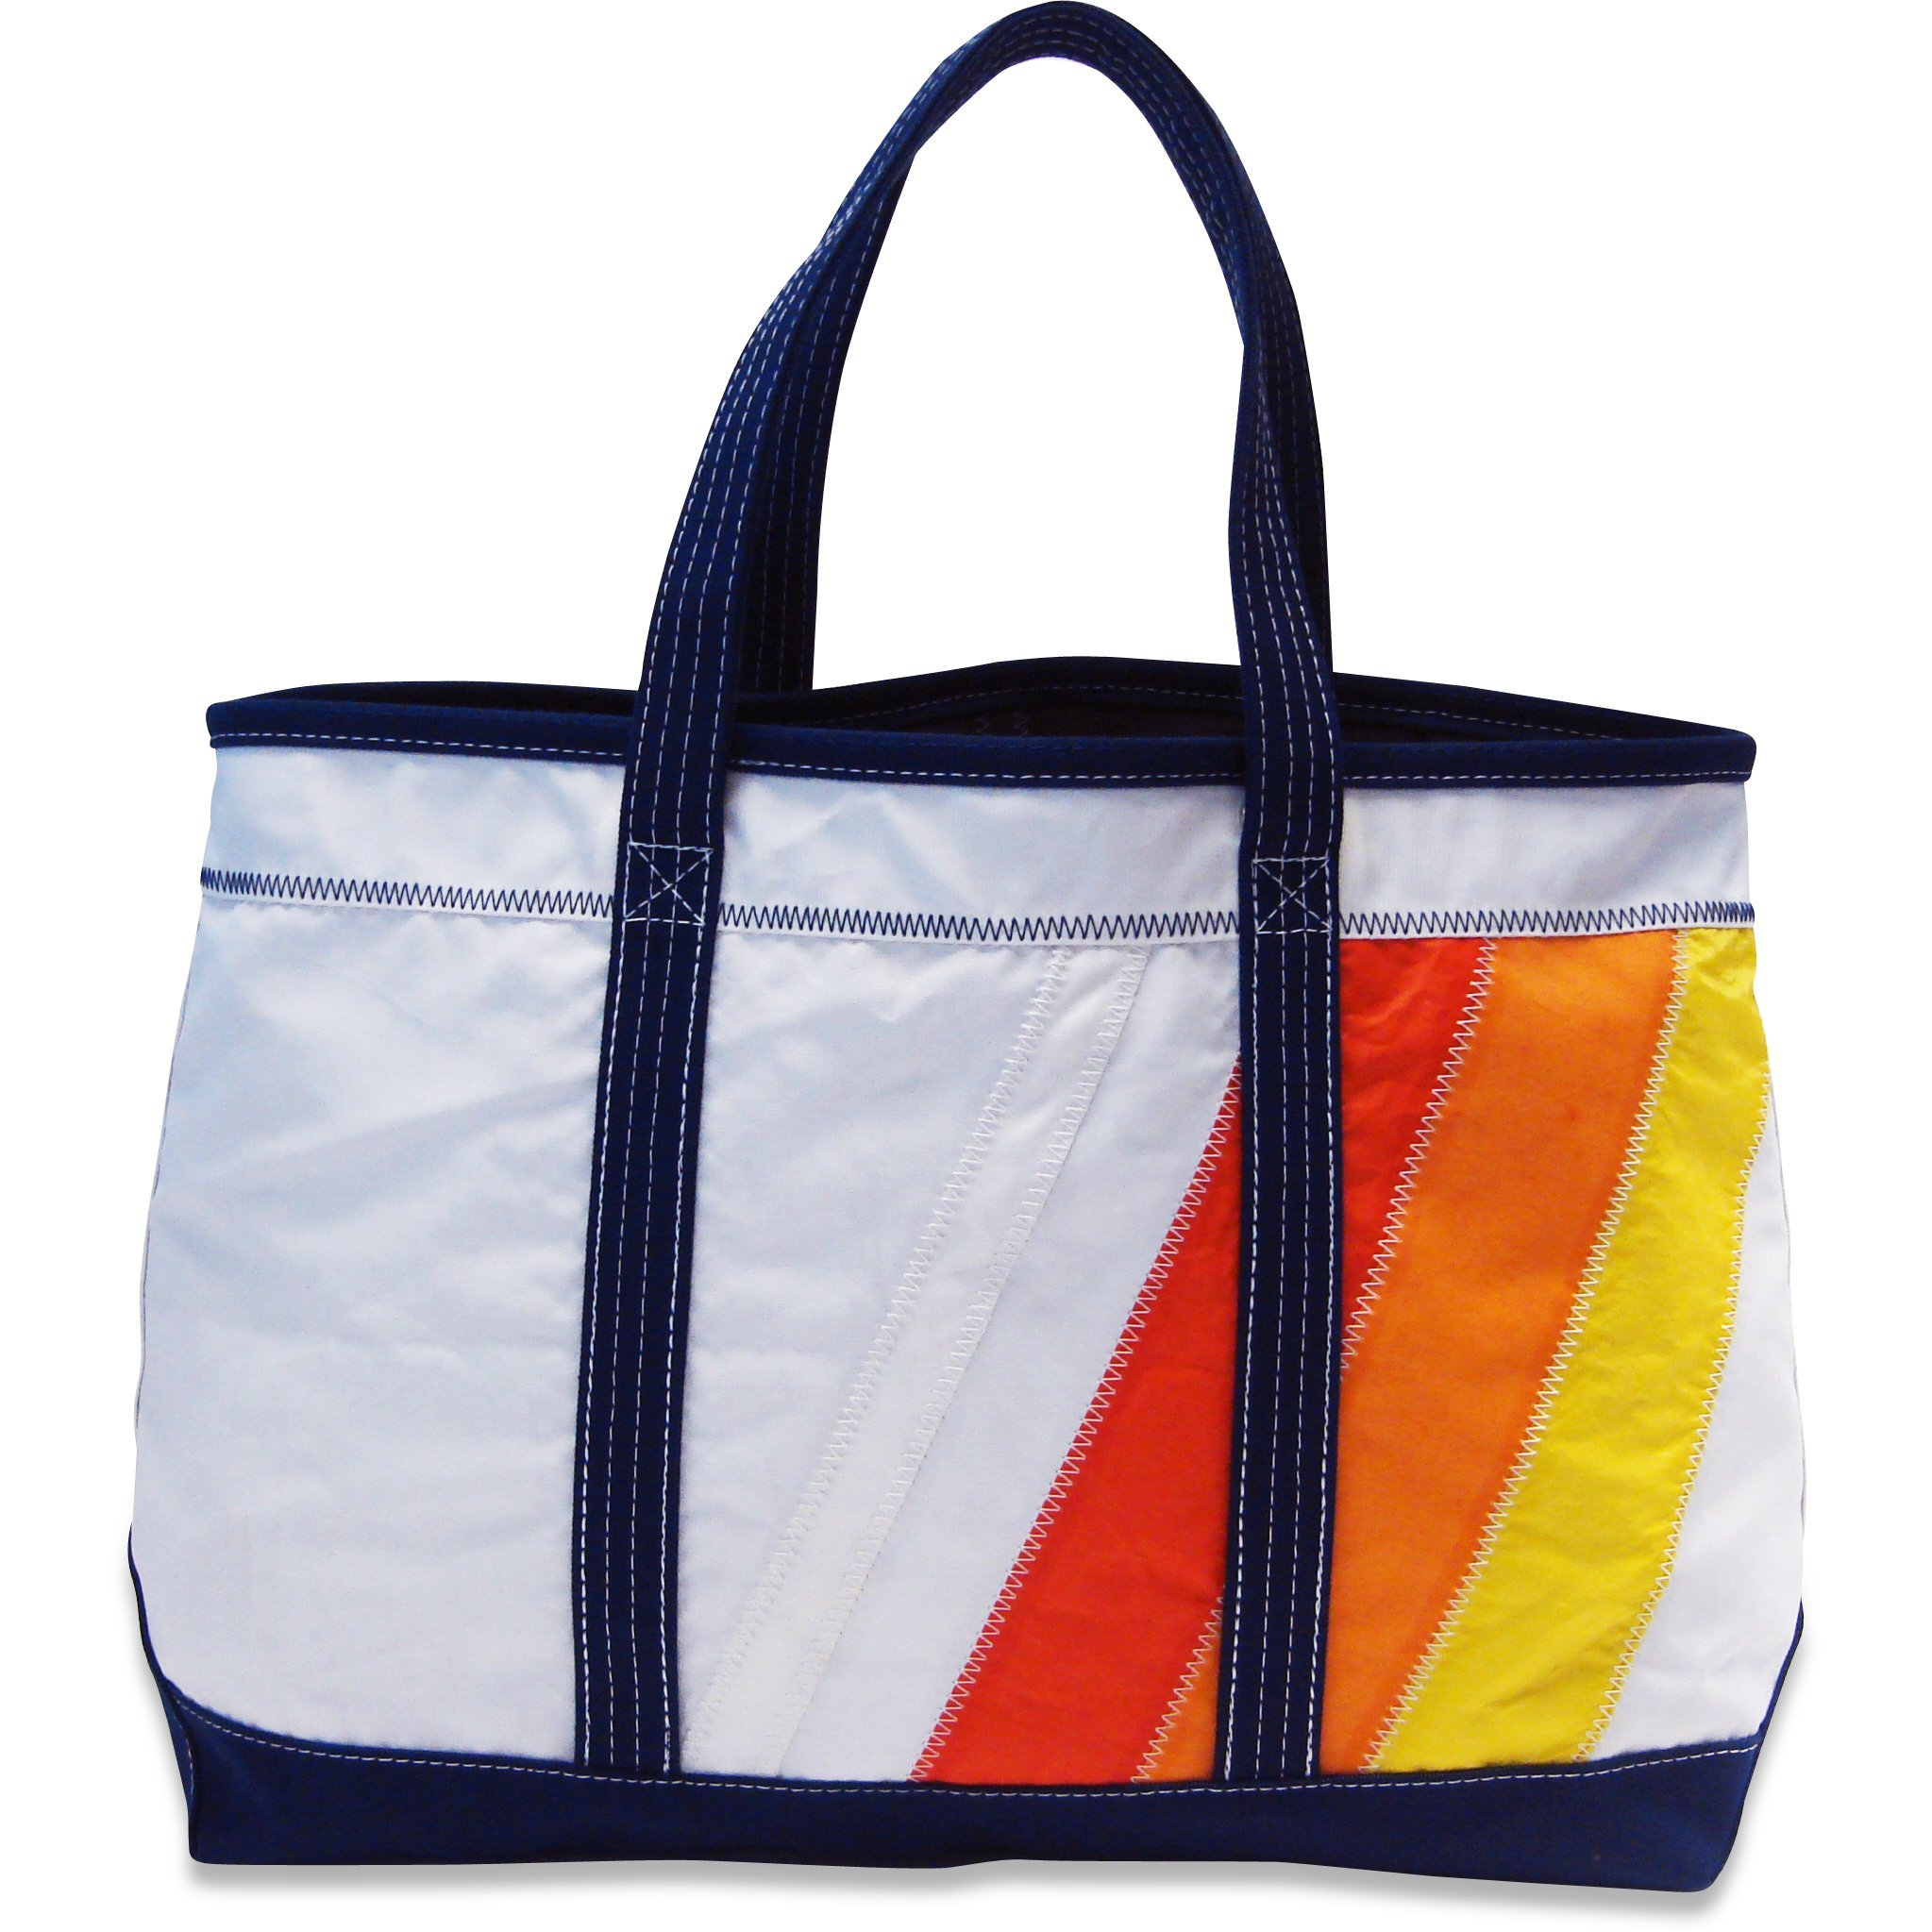 Boyd Sailcloth Shore Bag (Orange Rainbow) – Premium Handmade From 100% Recycled Water Resistant Sailboat Sails. Multipurpose Tote Bag,Duffel Bag,Travel Bag,Beach Bag,Shoulder Bag,Handbag.